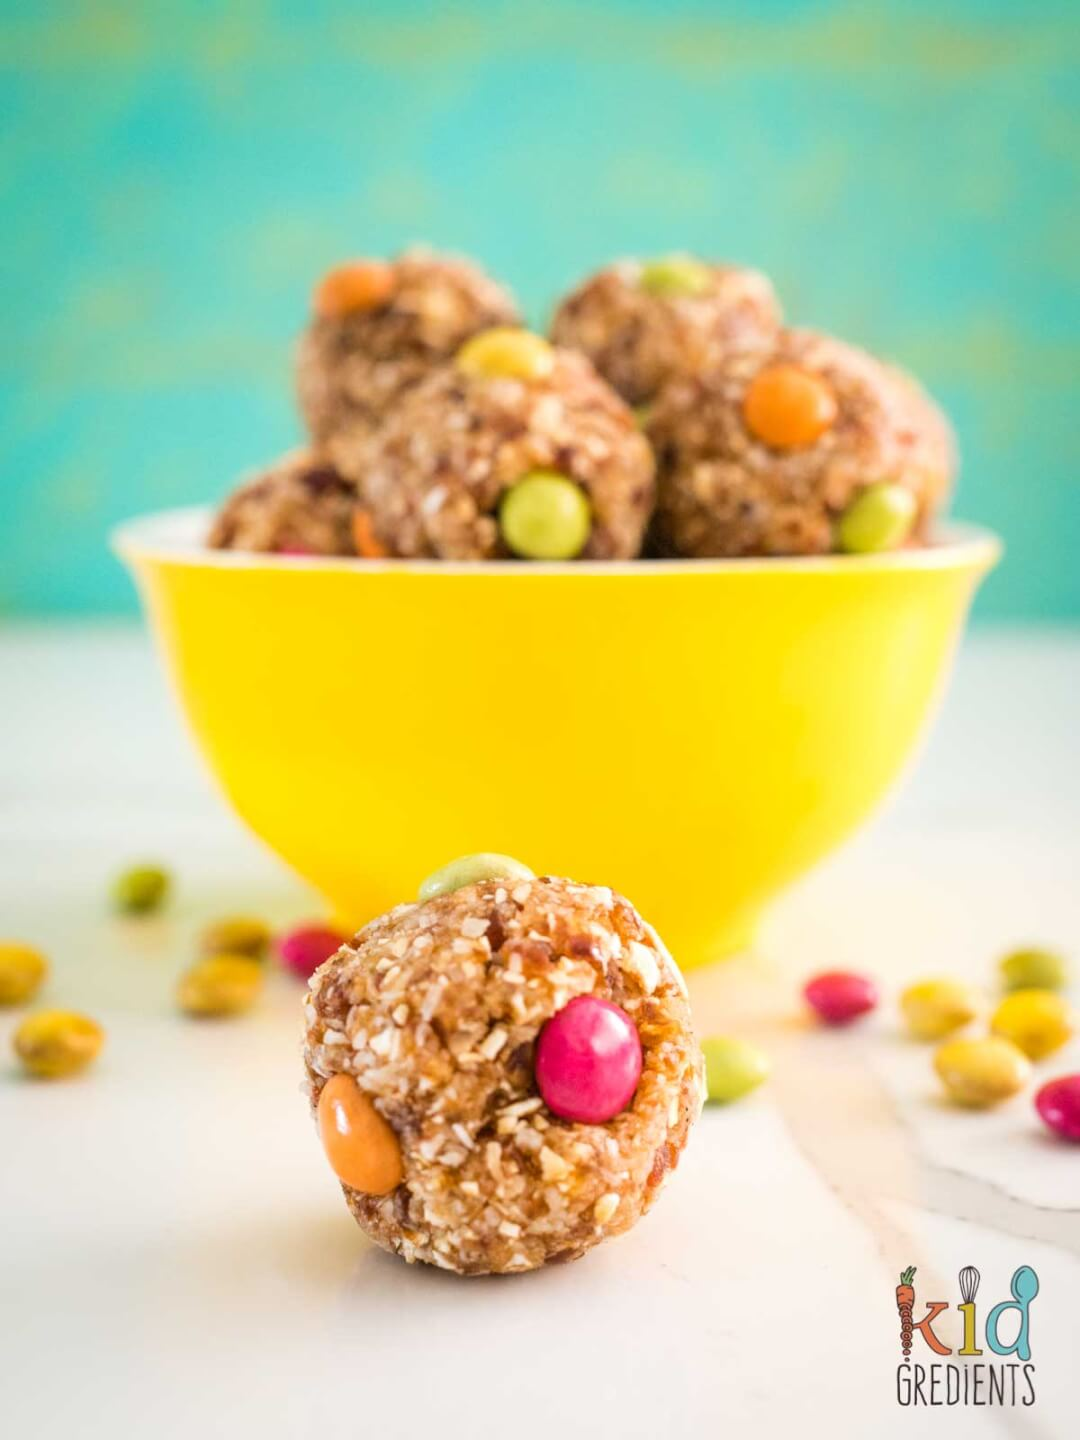 Caramel Chocolate bliss balls in a bowl and on the table